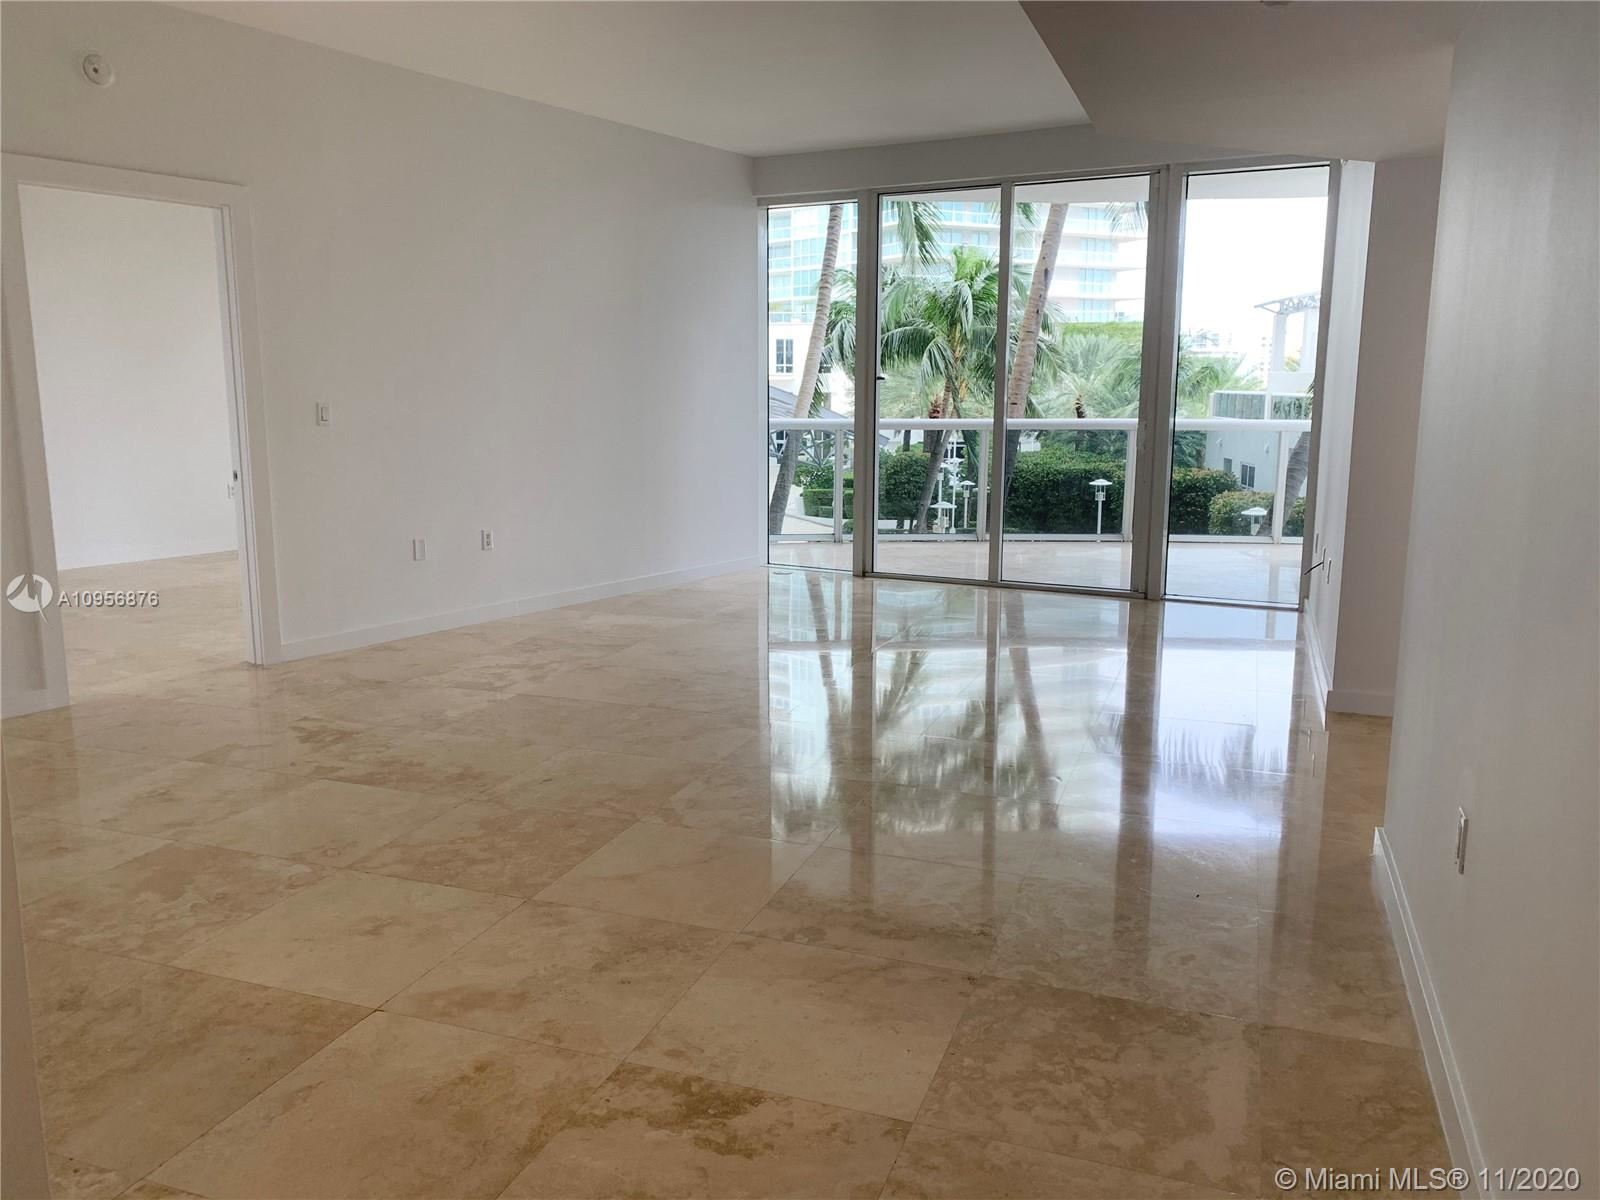 400 Alton Rd #409, Miami Beach, FL 33139 - #: A10956876